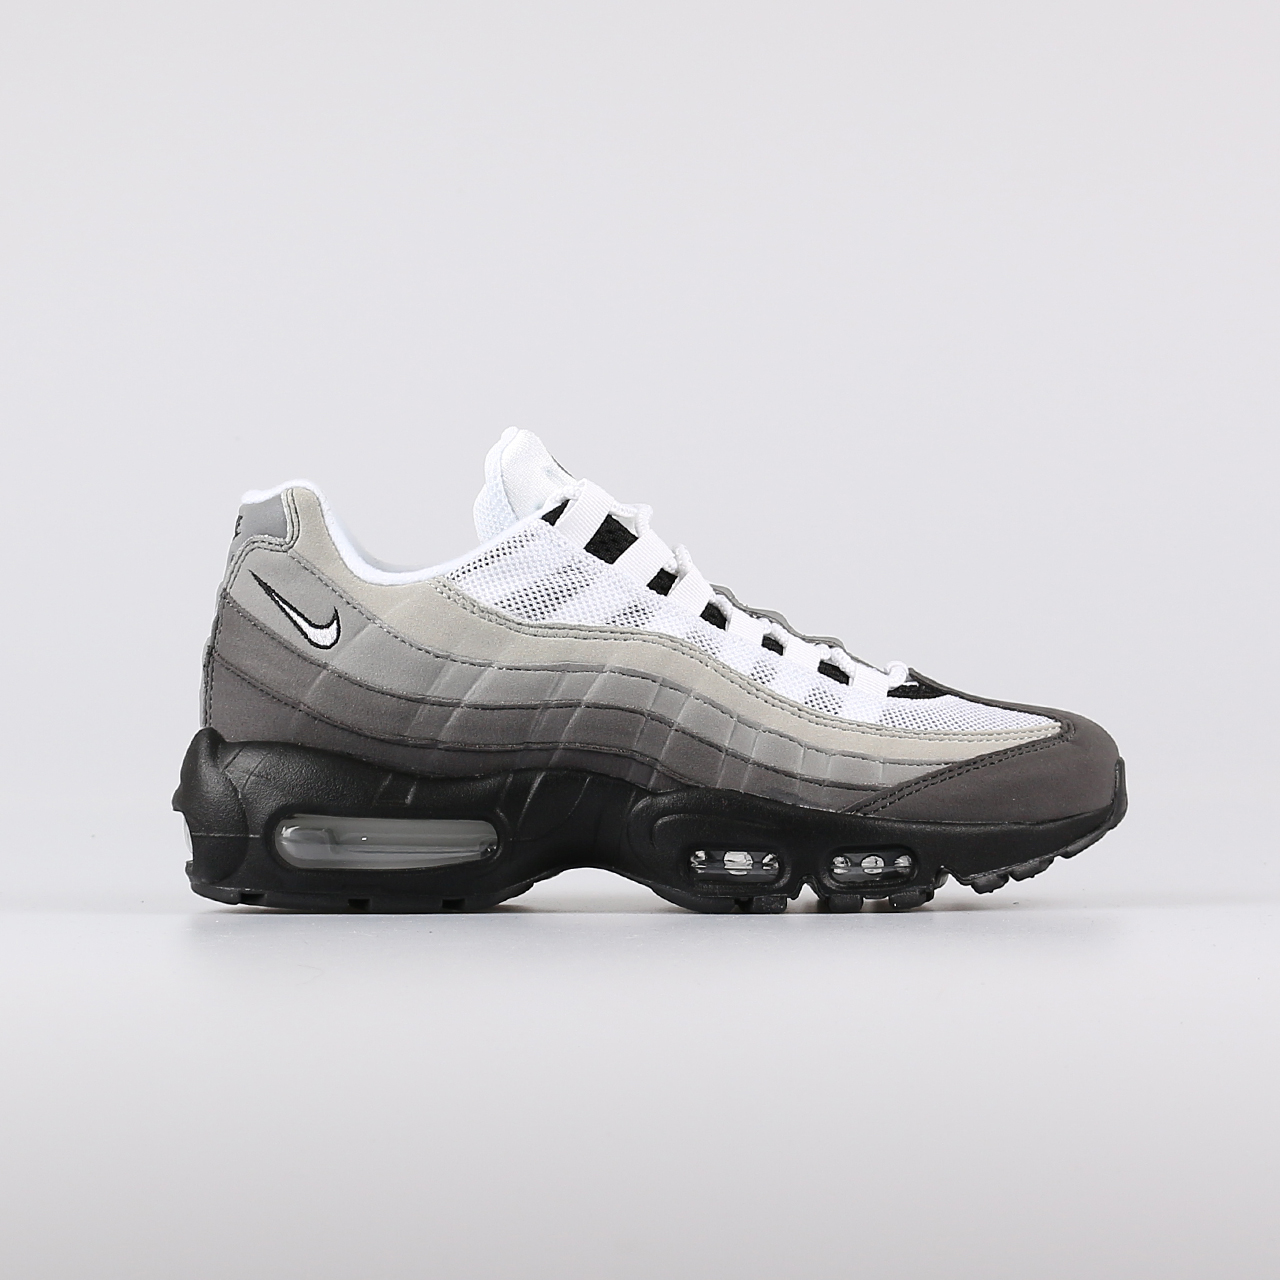 2b31de761f3 Home / Sneakers / NIKE Air Max 95 OG Sneakers Heren